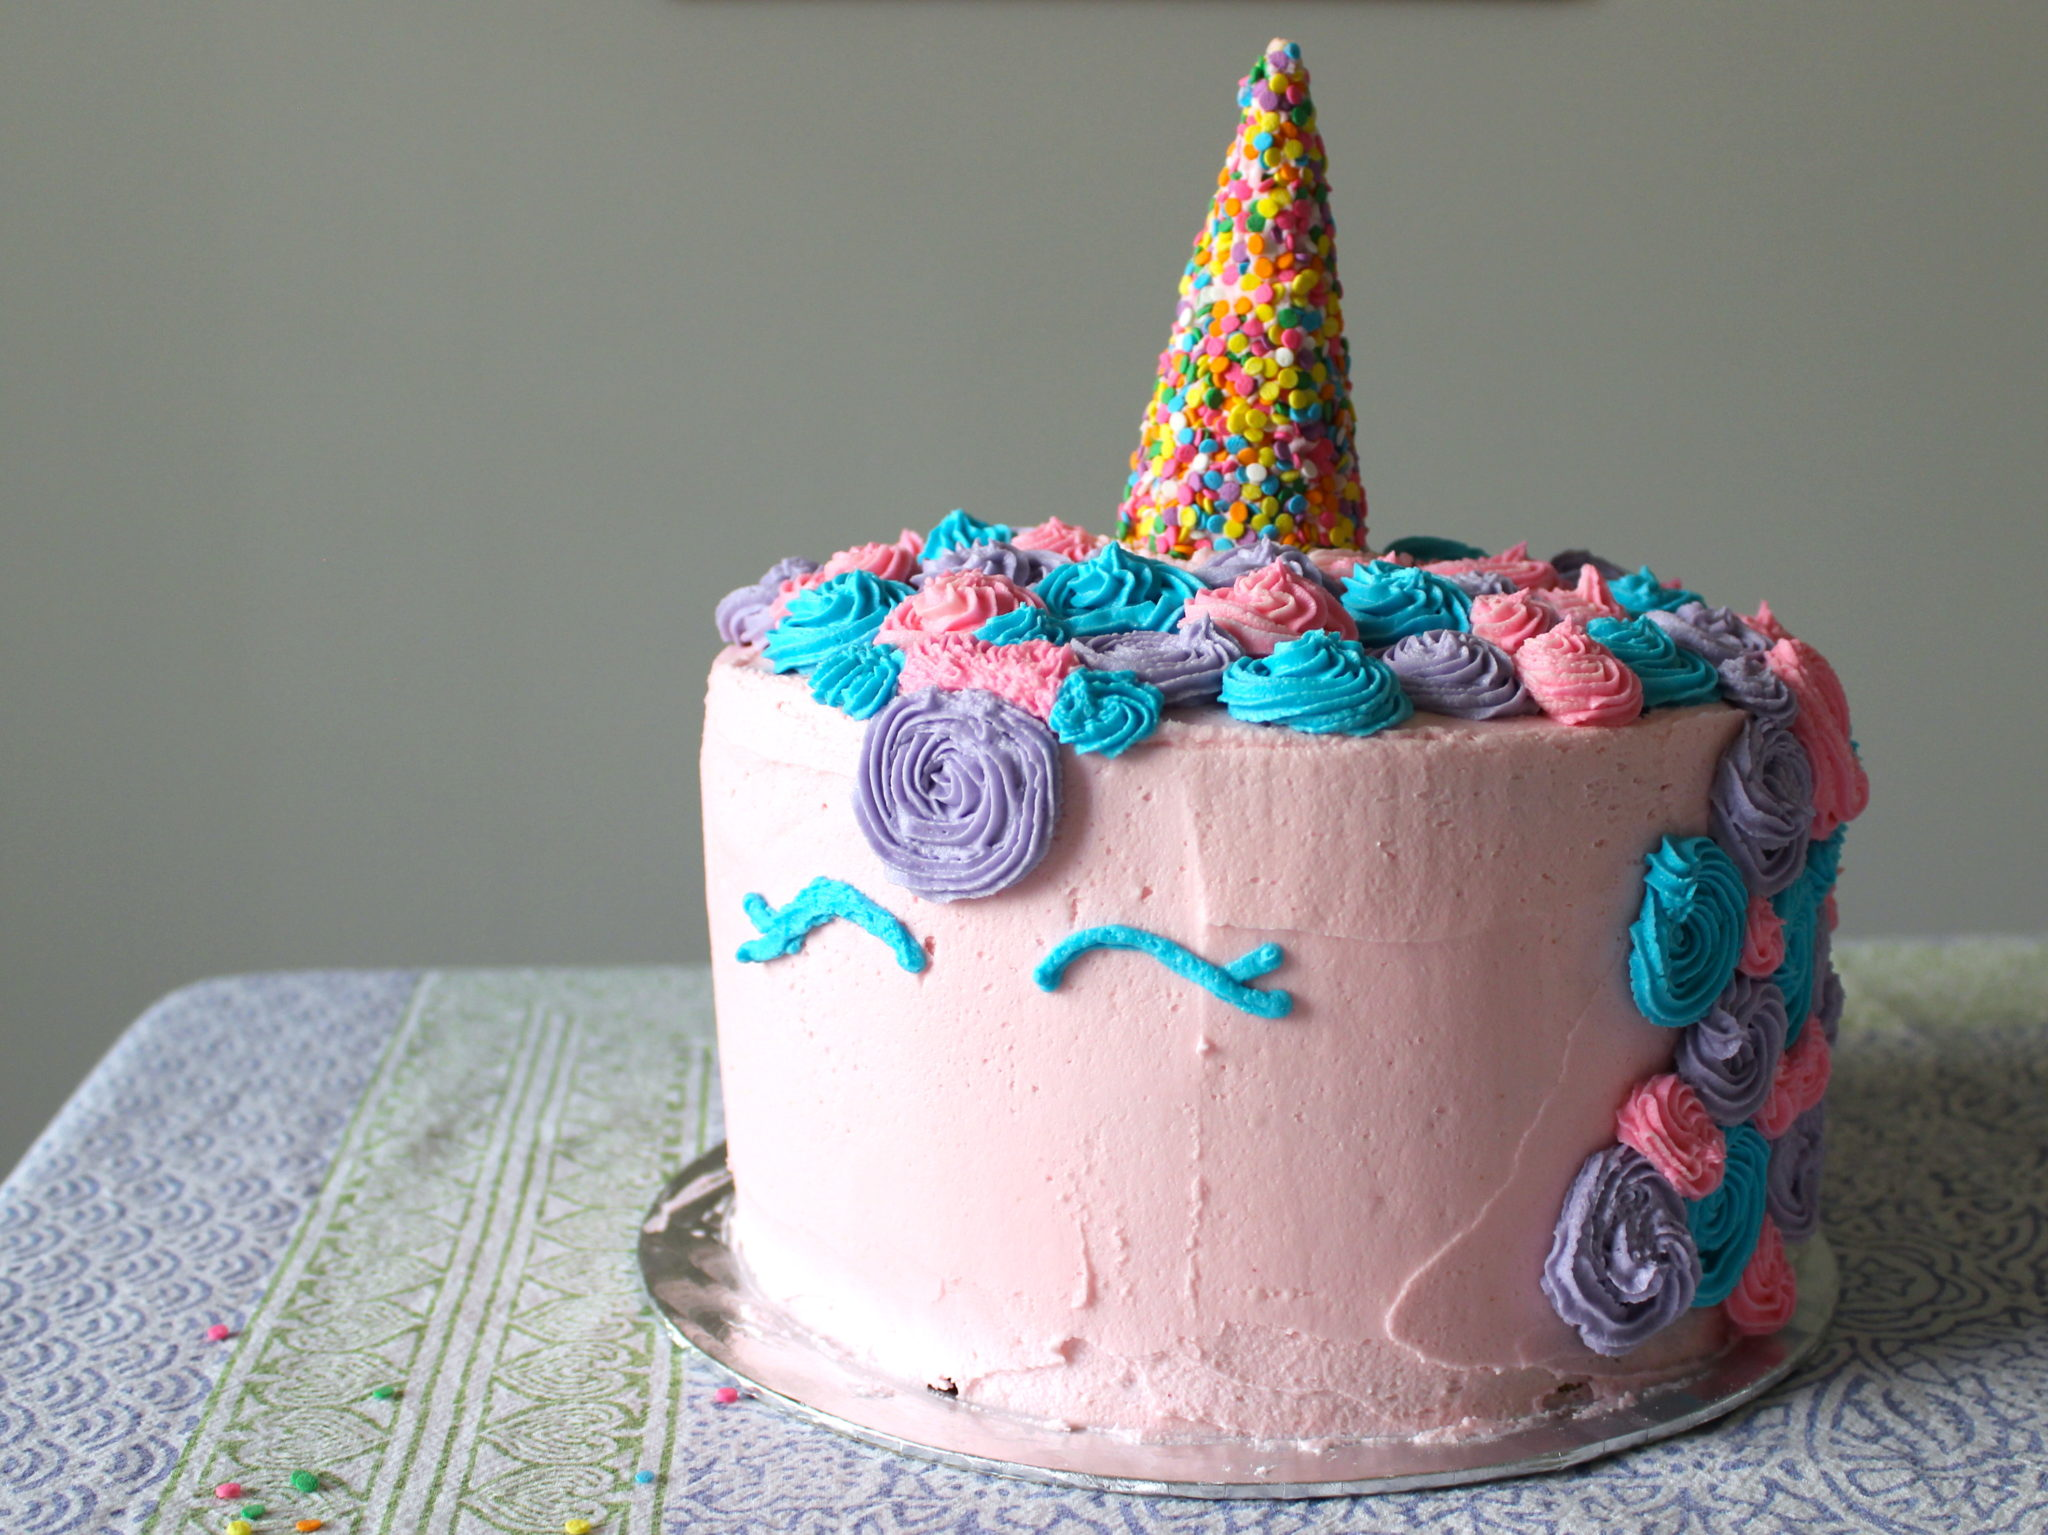 How To Make A Unicorn Cake With No Fondant